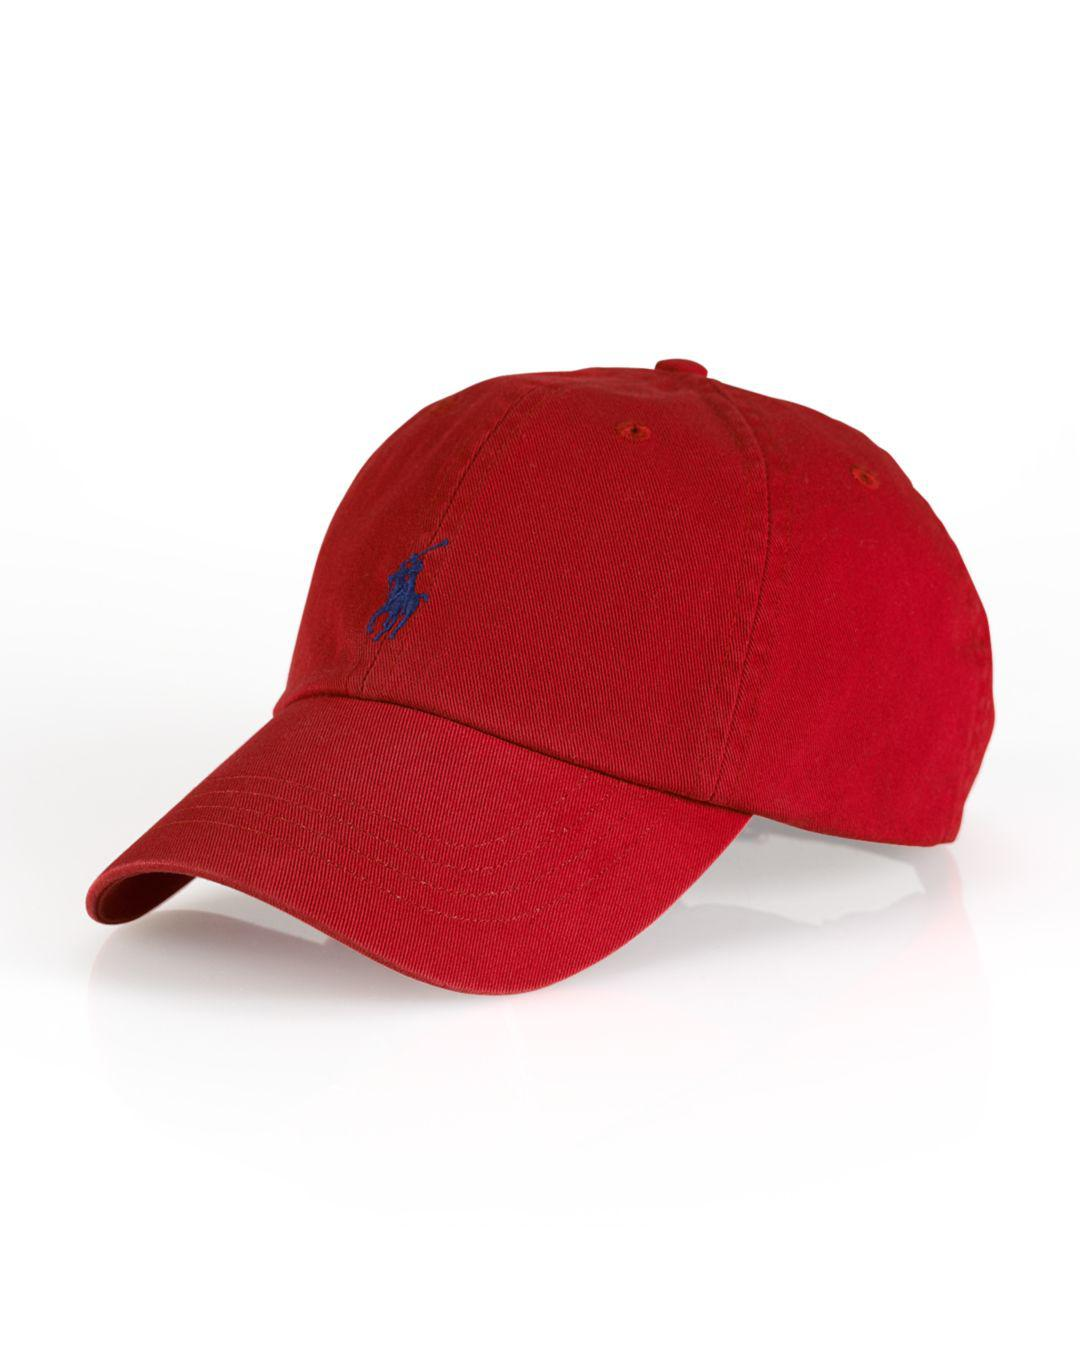 856ae00f861 Lyst - Polo Ralph Lauren Signature Pony Hat in Red for Men - Save 33%